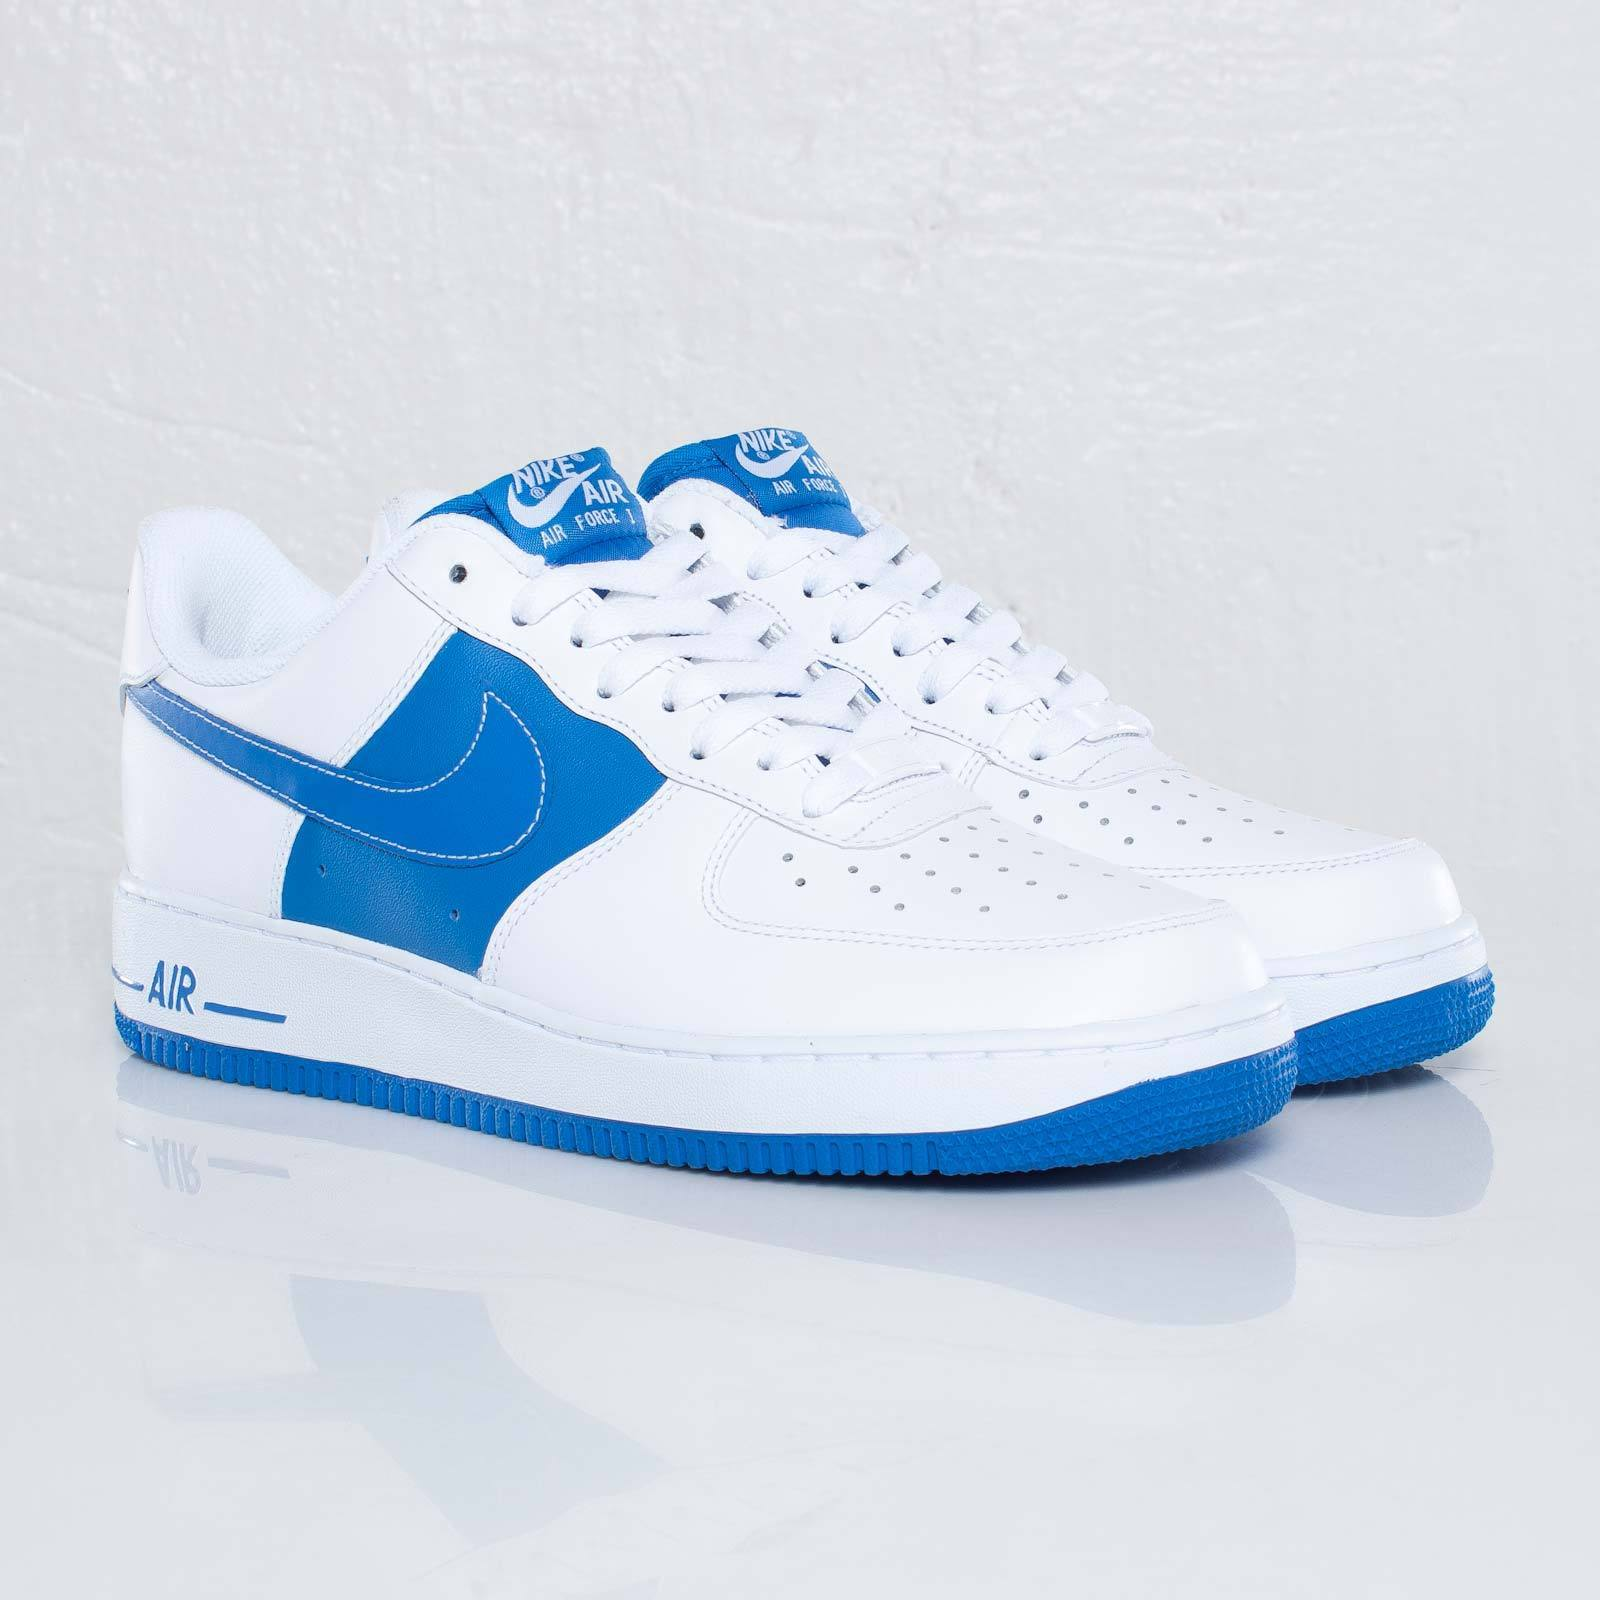 Mens Nike Air Force 1 Low White Blue Leather Trainer 488298 110